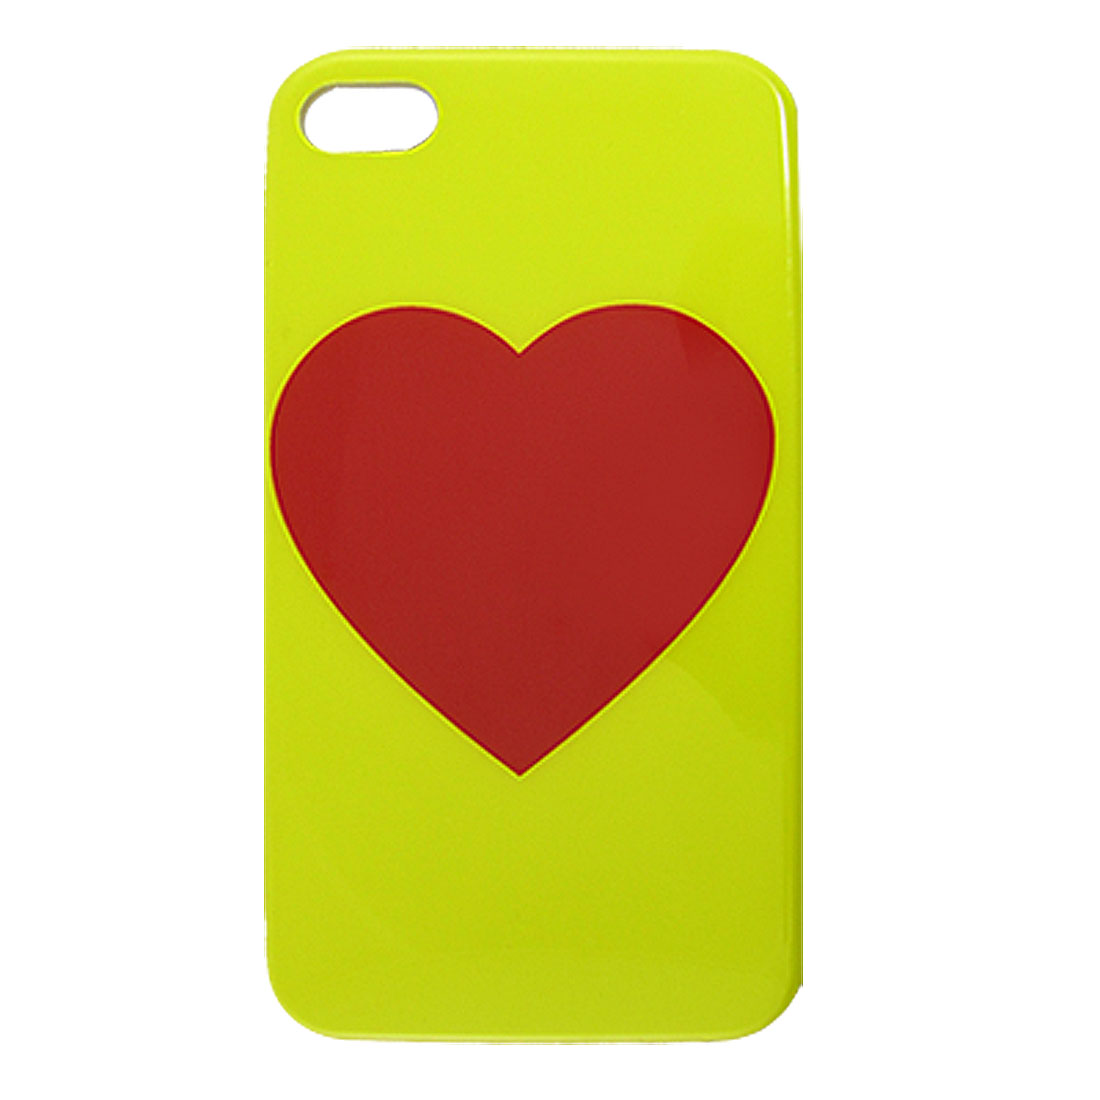 Red Heart Pattern Yellow Hard Plastic IMD Back Case for iPhone 4 4G 4S